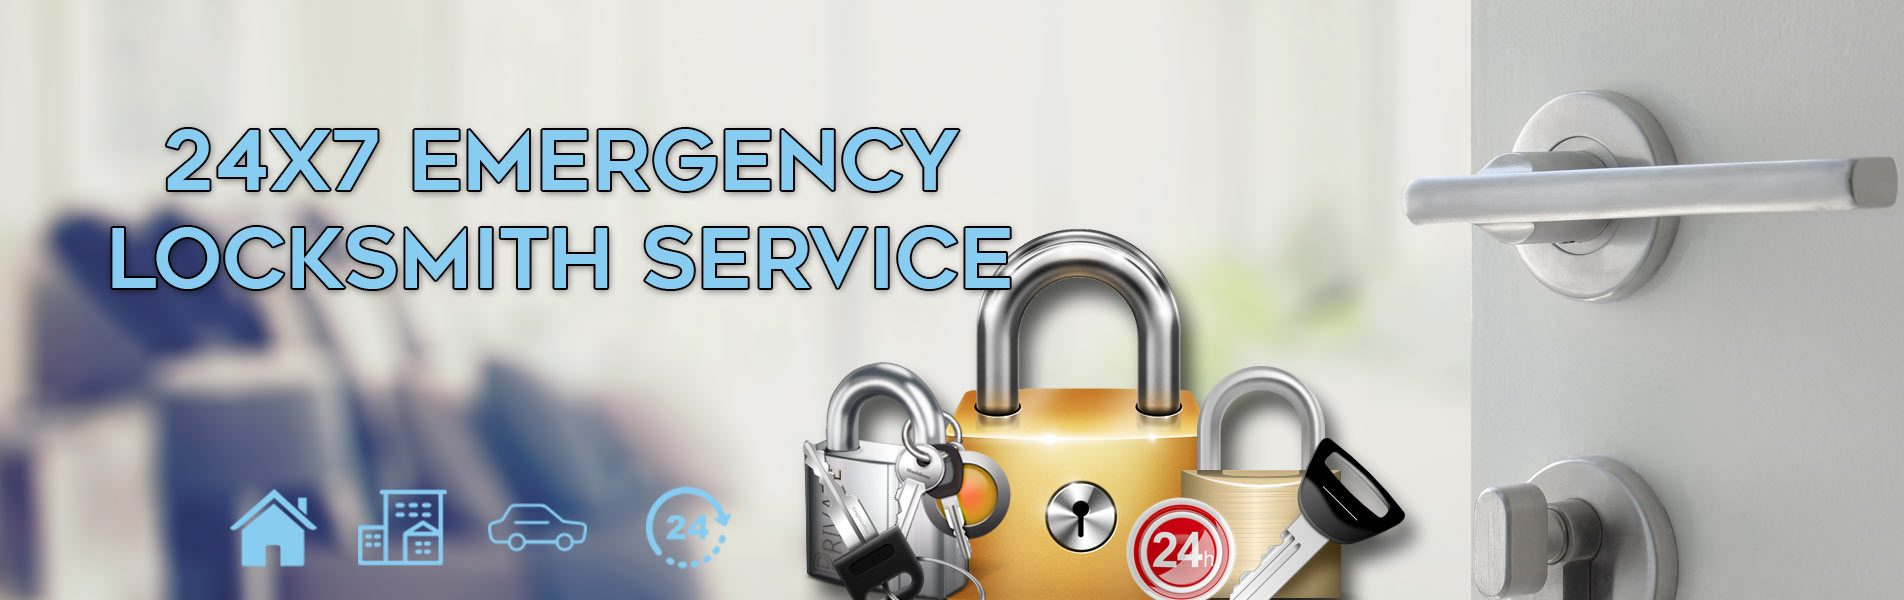 City Locksmith Services Greenwich, CT 203-893-4204